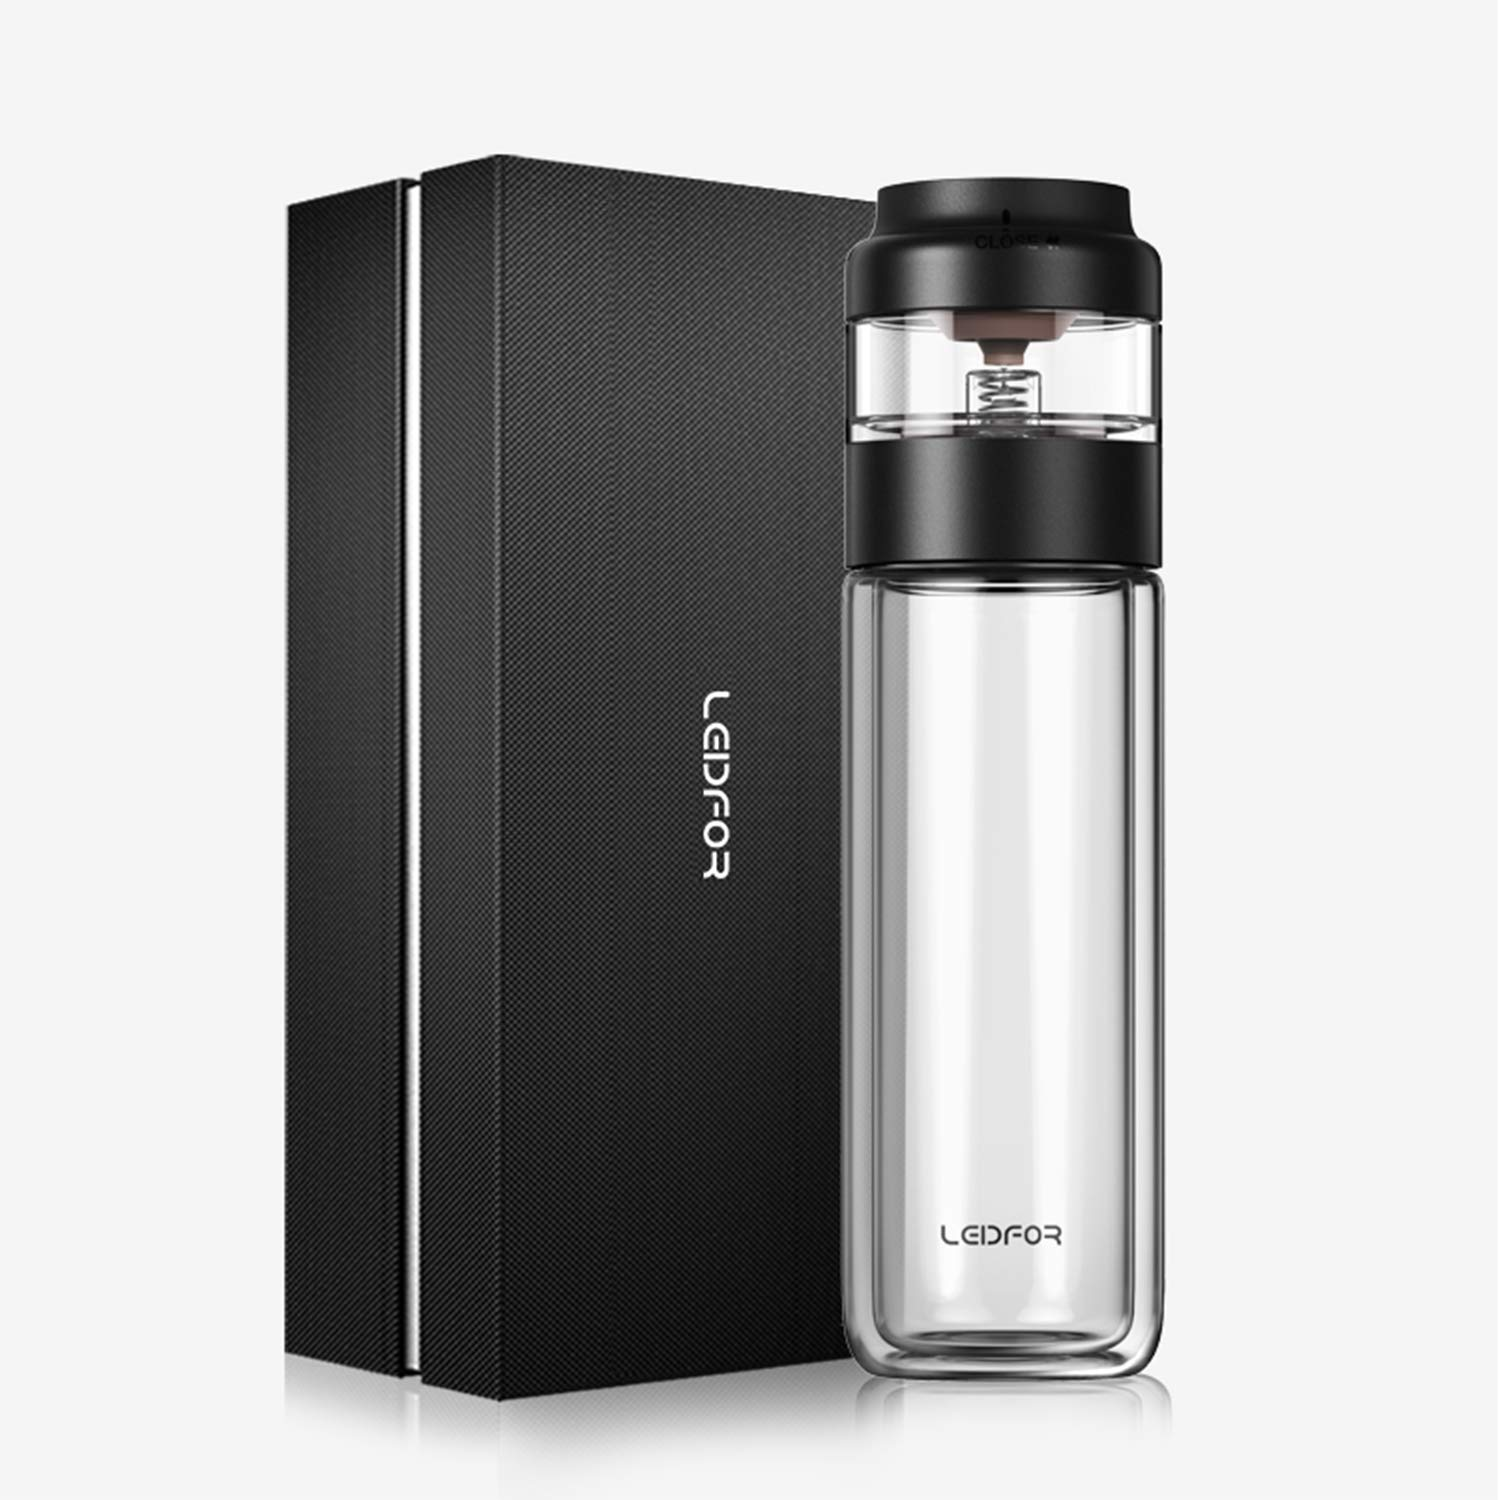 LEIDFOR Glass Tea Tumbler with Leaf-Tea Separation Infuser, Double Wall Glass Travel Tea Mug, Leakproof Tea Bottle with Strainer BPA Free Black 10 Ounce by LEIDFOR